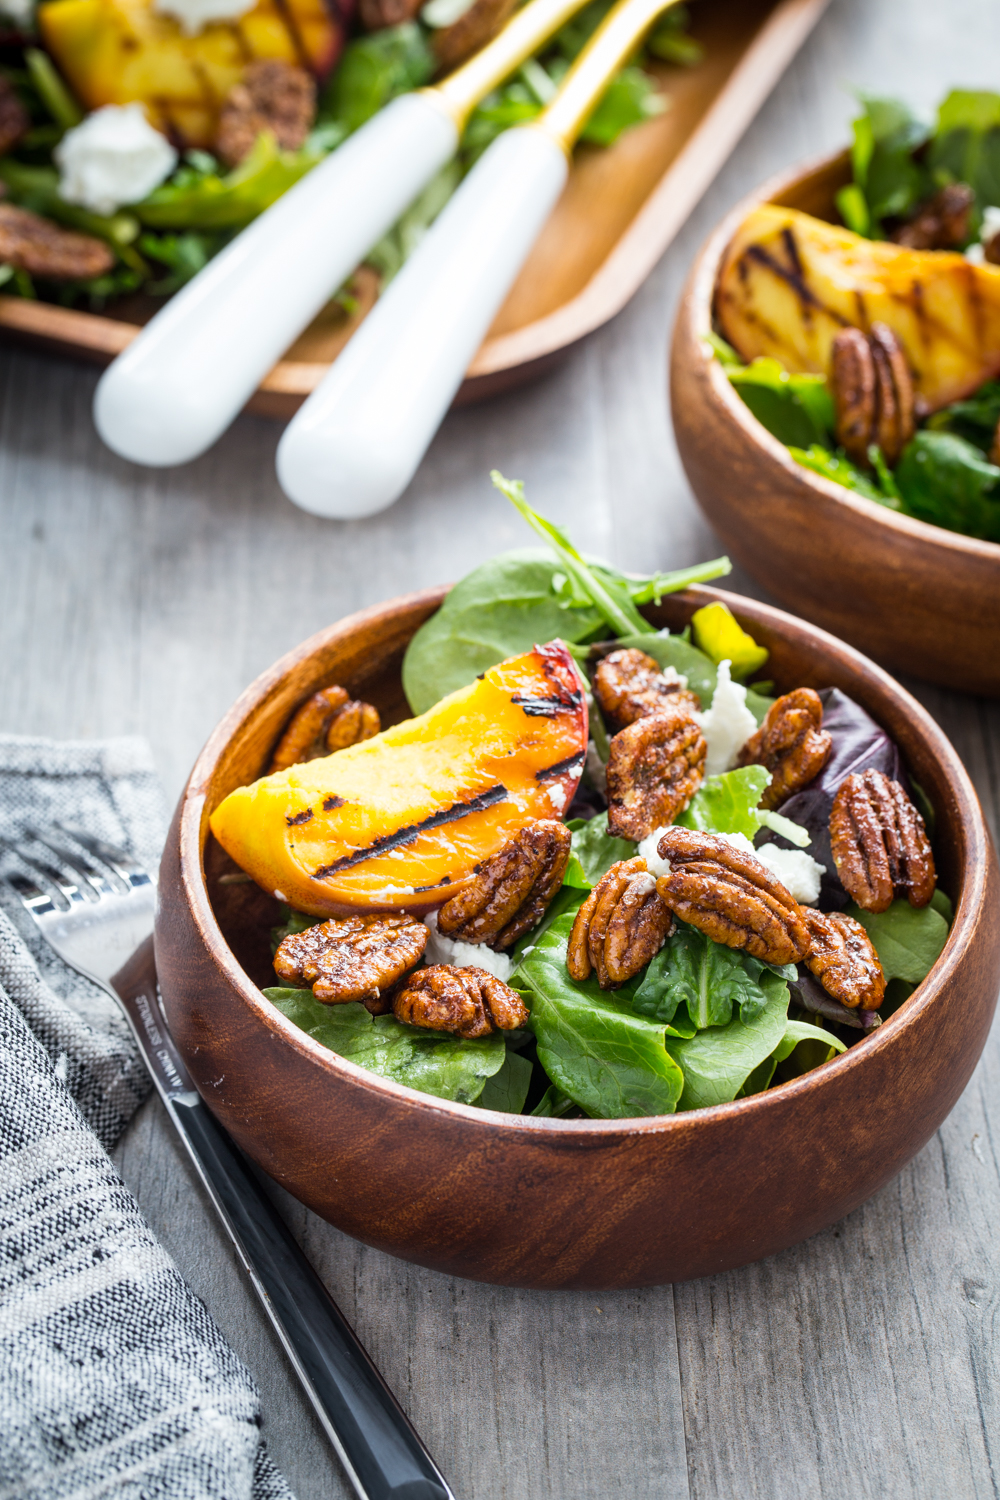 Spiced Pecan Grilled Peach Salad from Jelly Toast - Full of lovely spiced pecans and tender grilled peaches